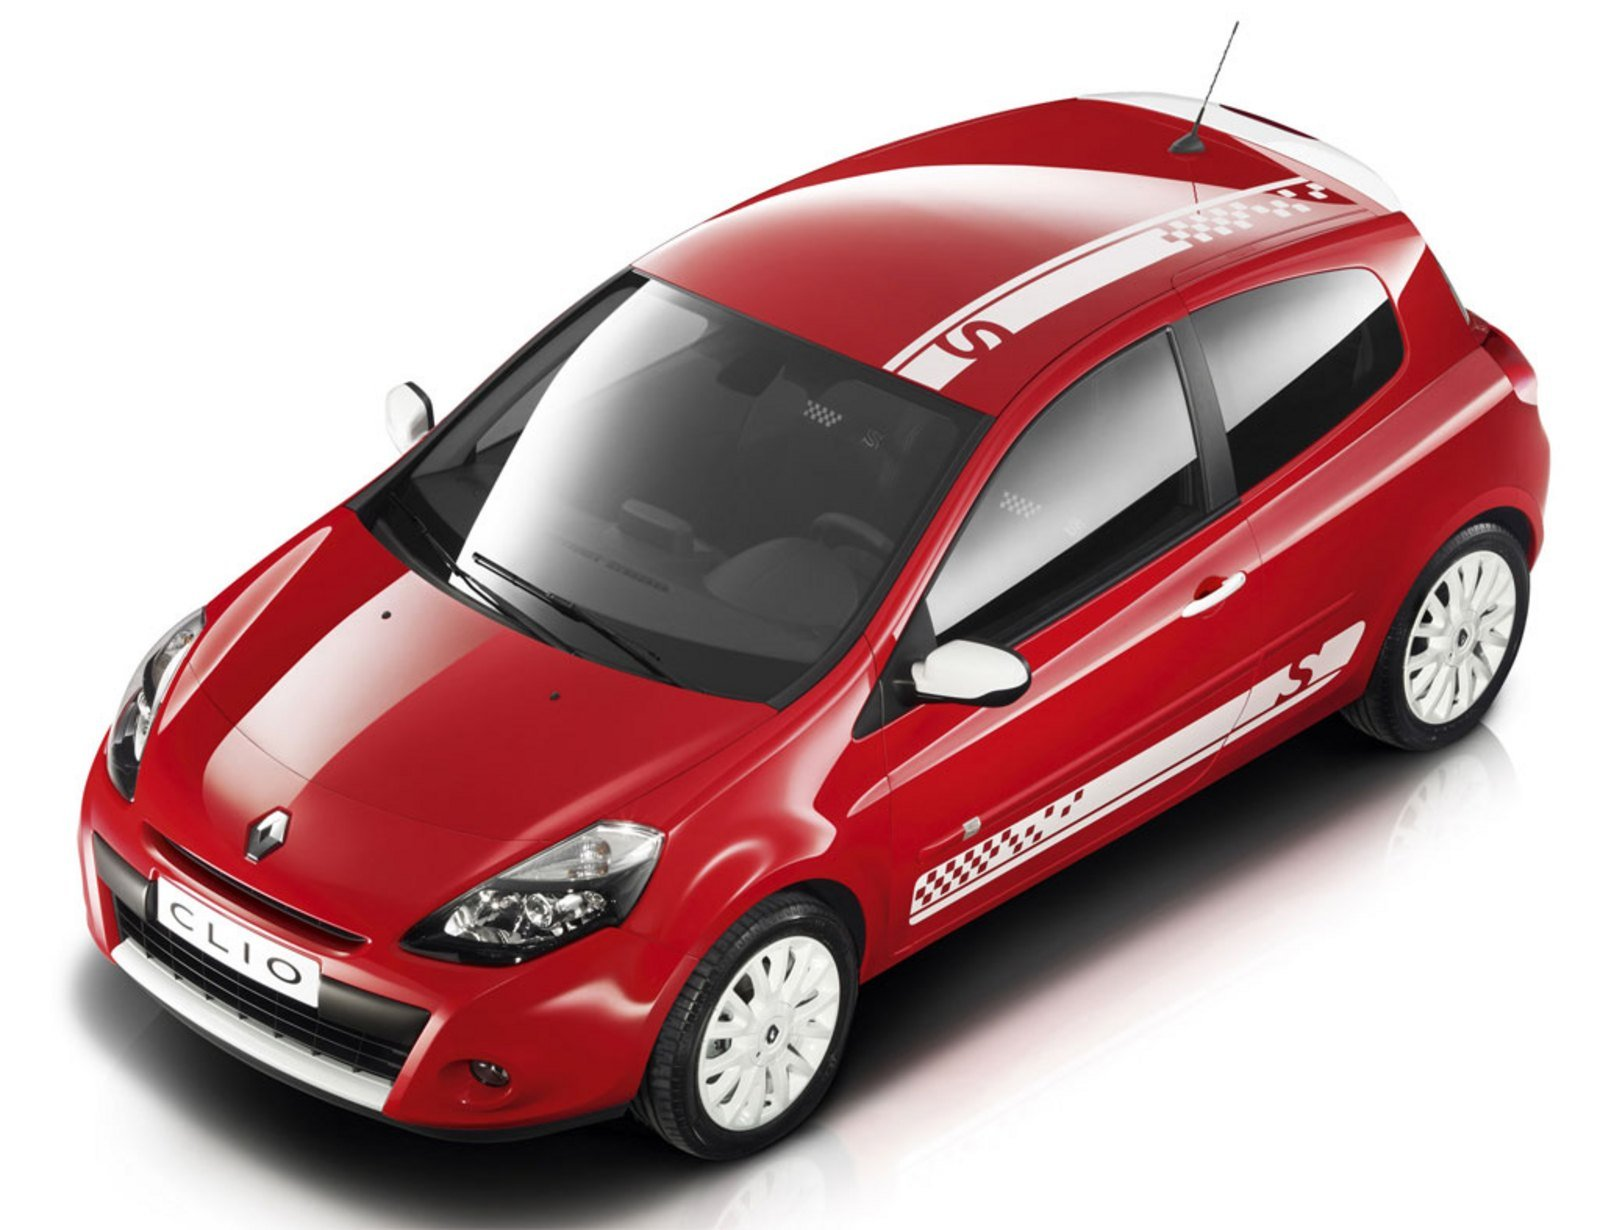 2010 renault clio s review top speed. Black Bedroom Furniture Sets. Home Design Ideas